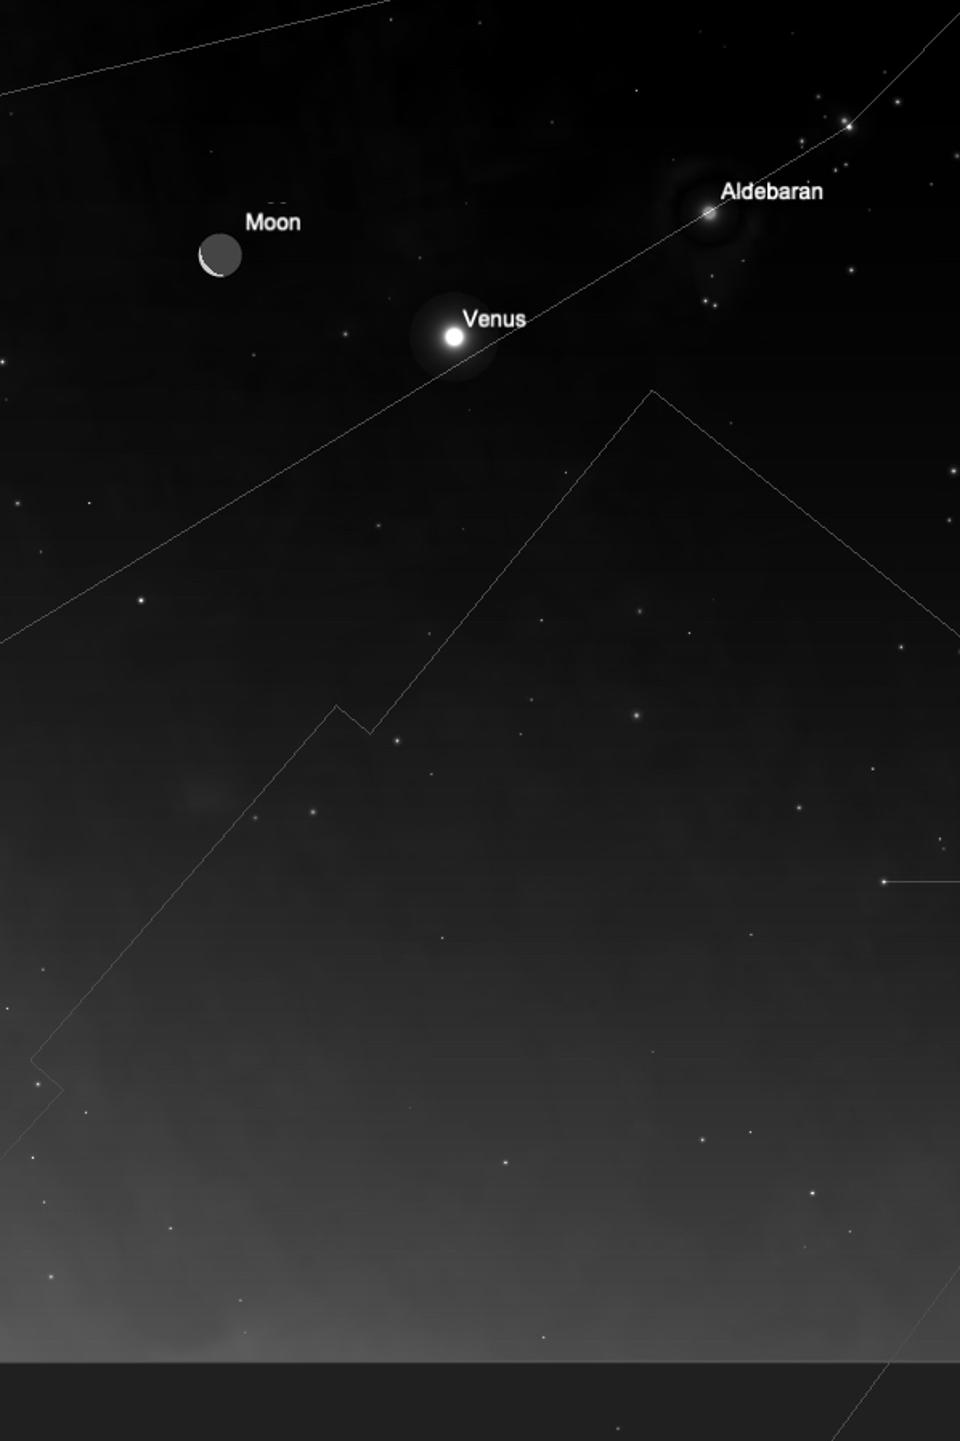 Friday, July 17, 2020: the Moon and Venus in conjunction.